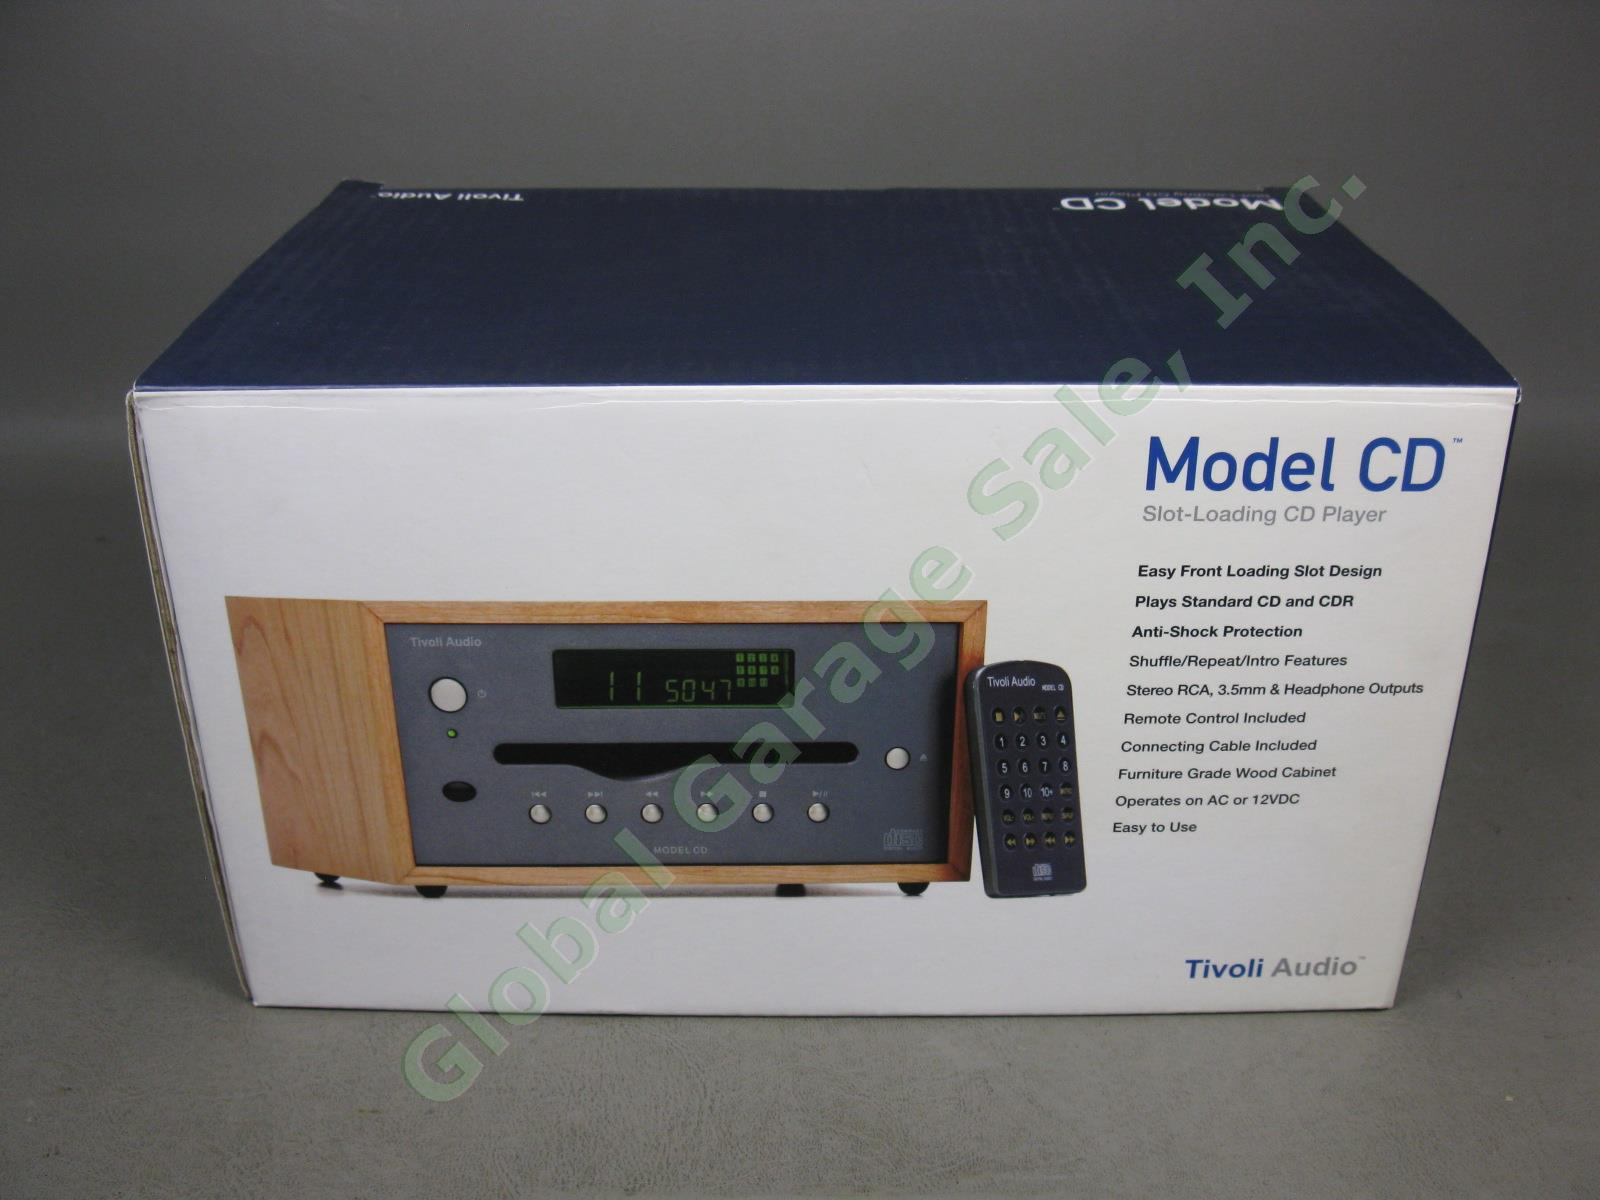 Tivoli audio model cd slot loading cd player poker table fabric diy